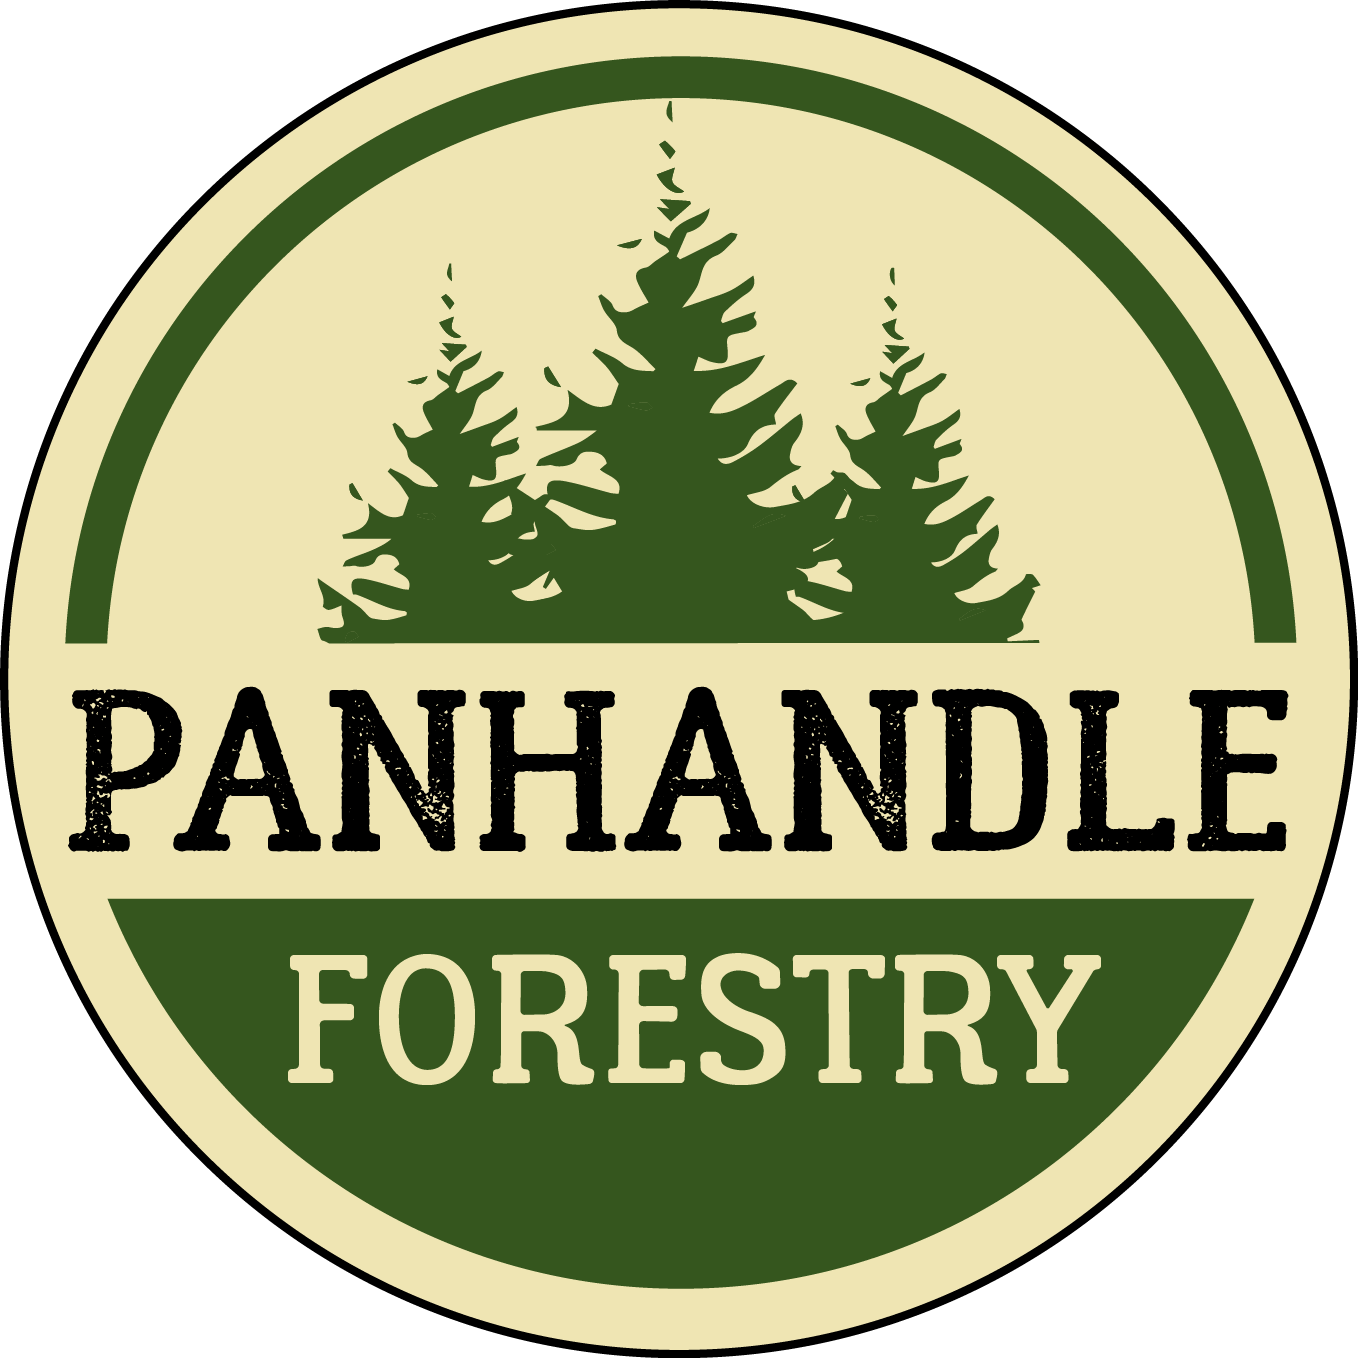 Panhandle Forestry Services